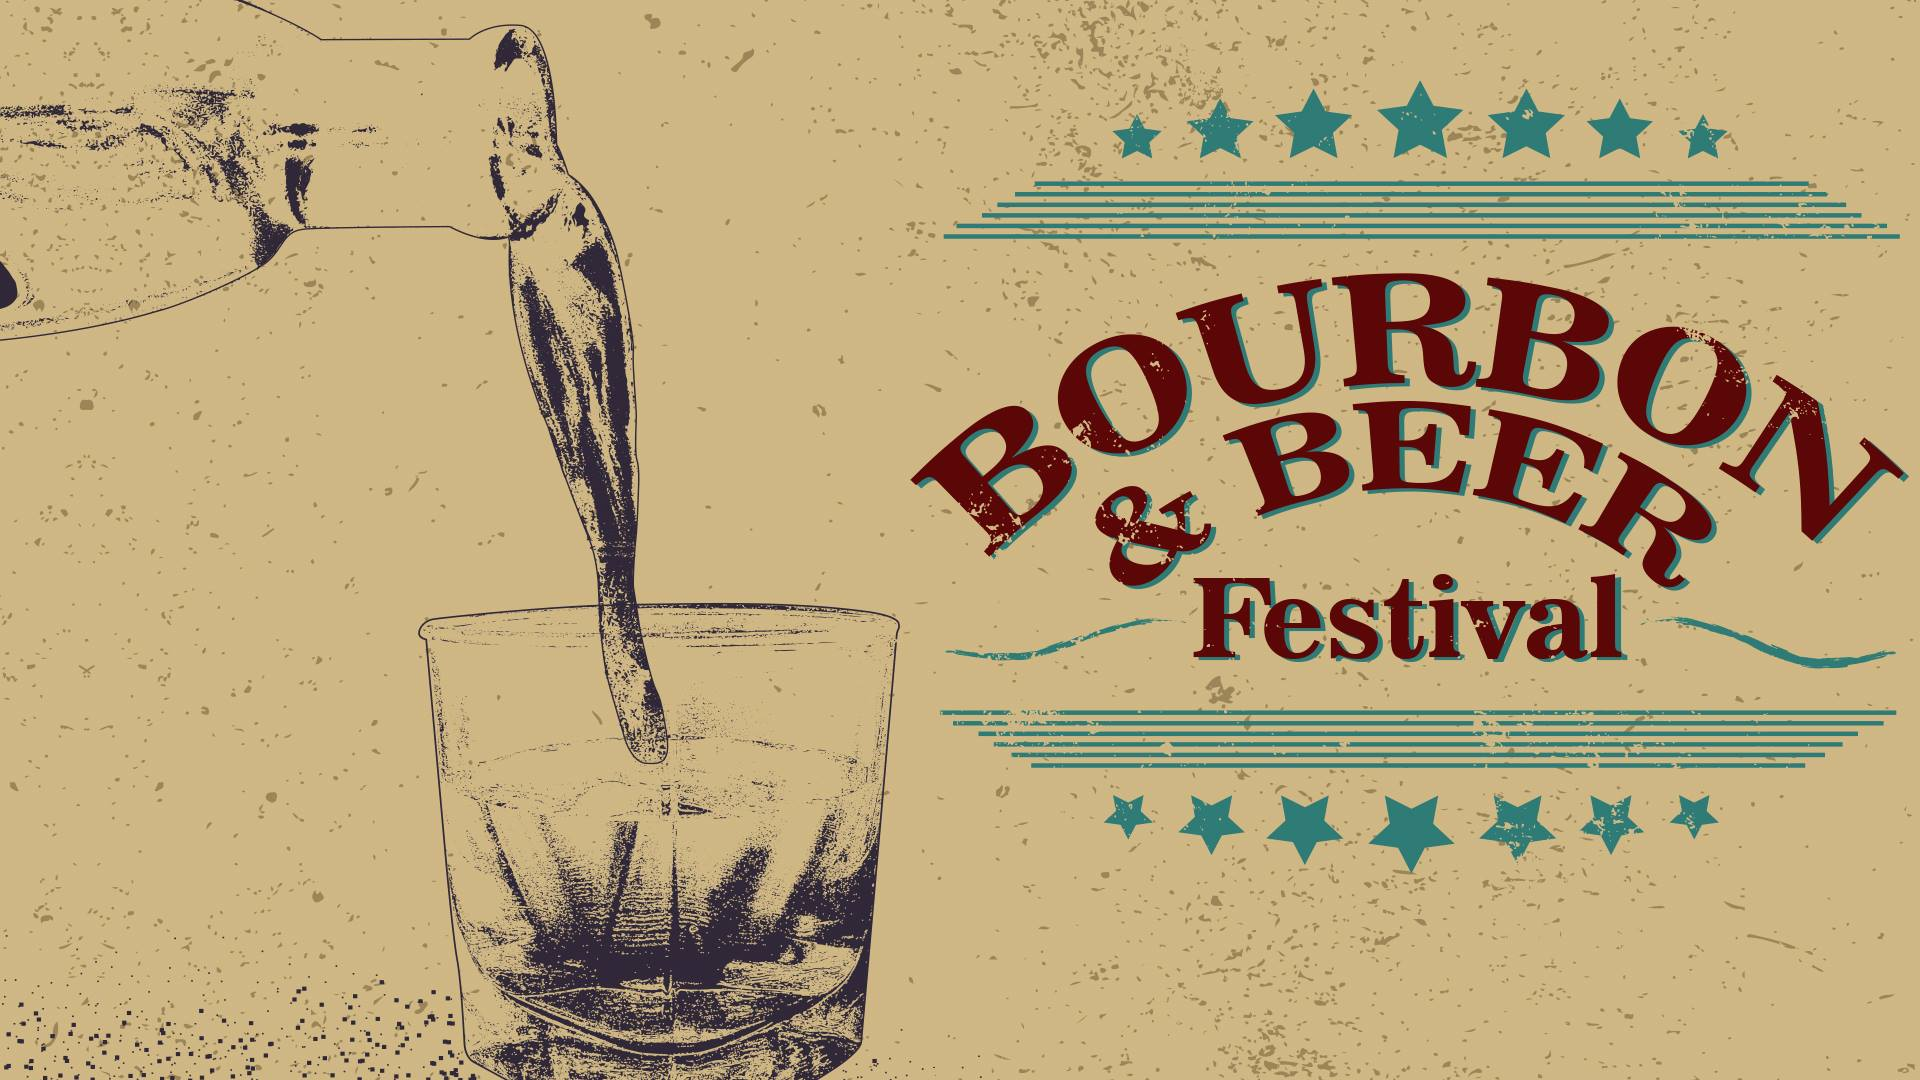 Lake County Illinois CVB     13th Annual Bourbon Beer Fest 1920x1080